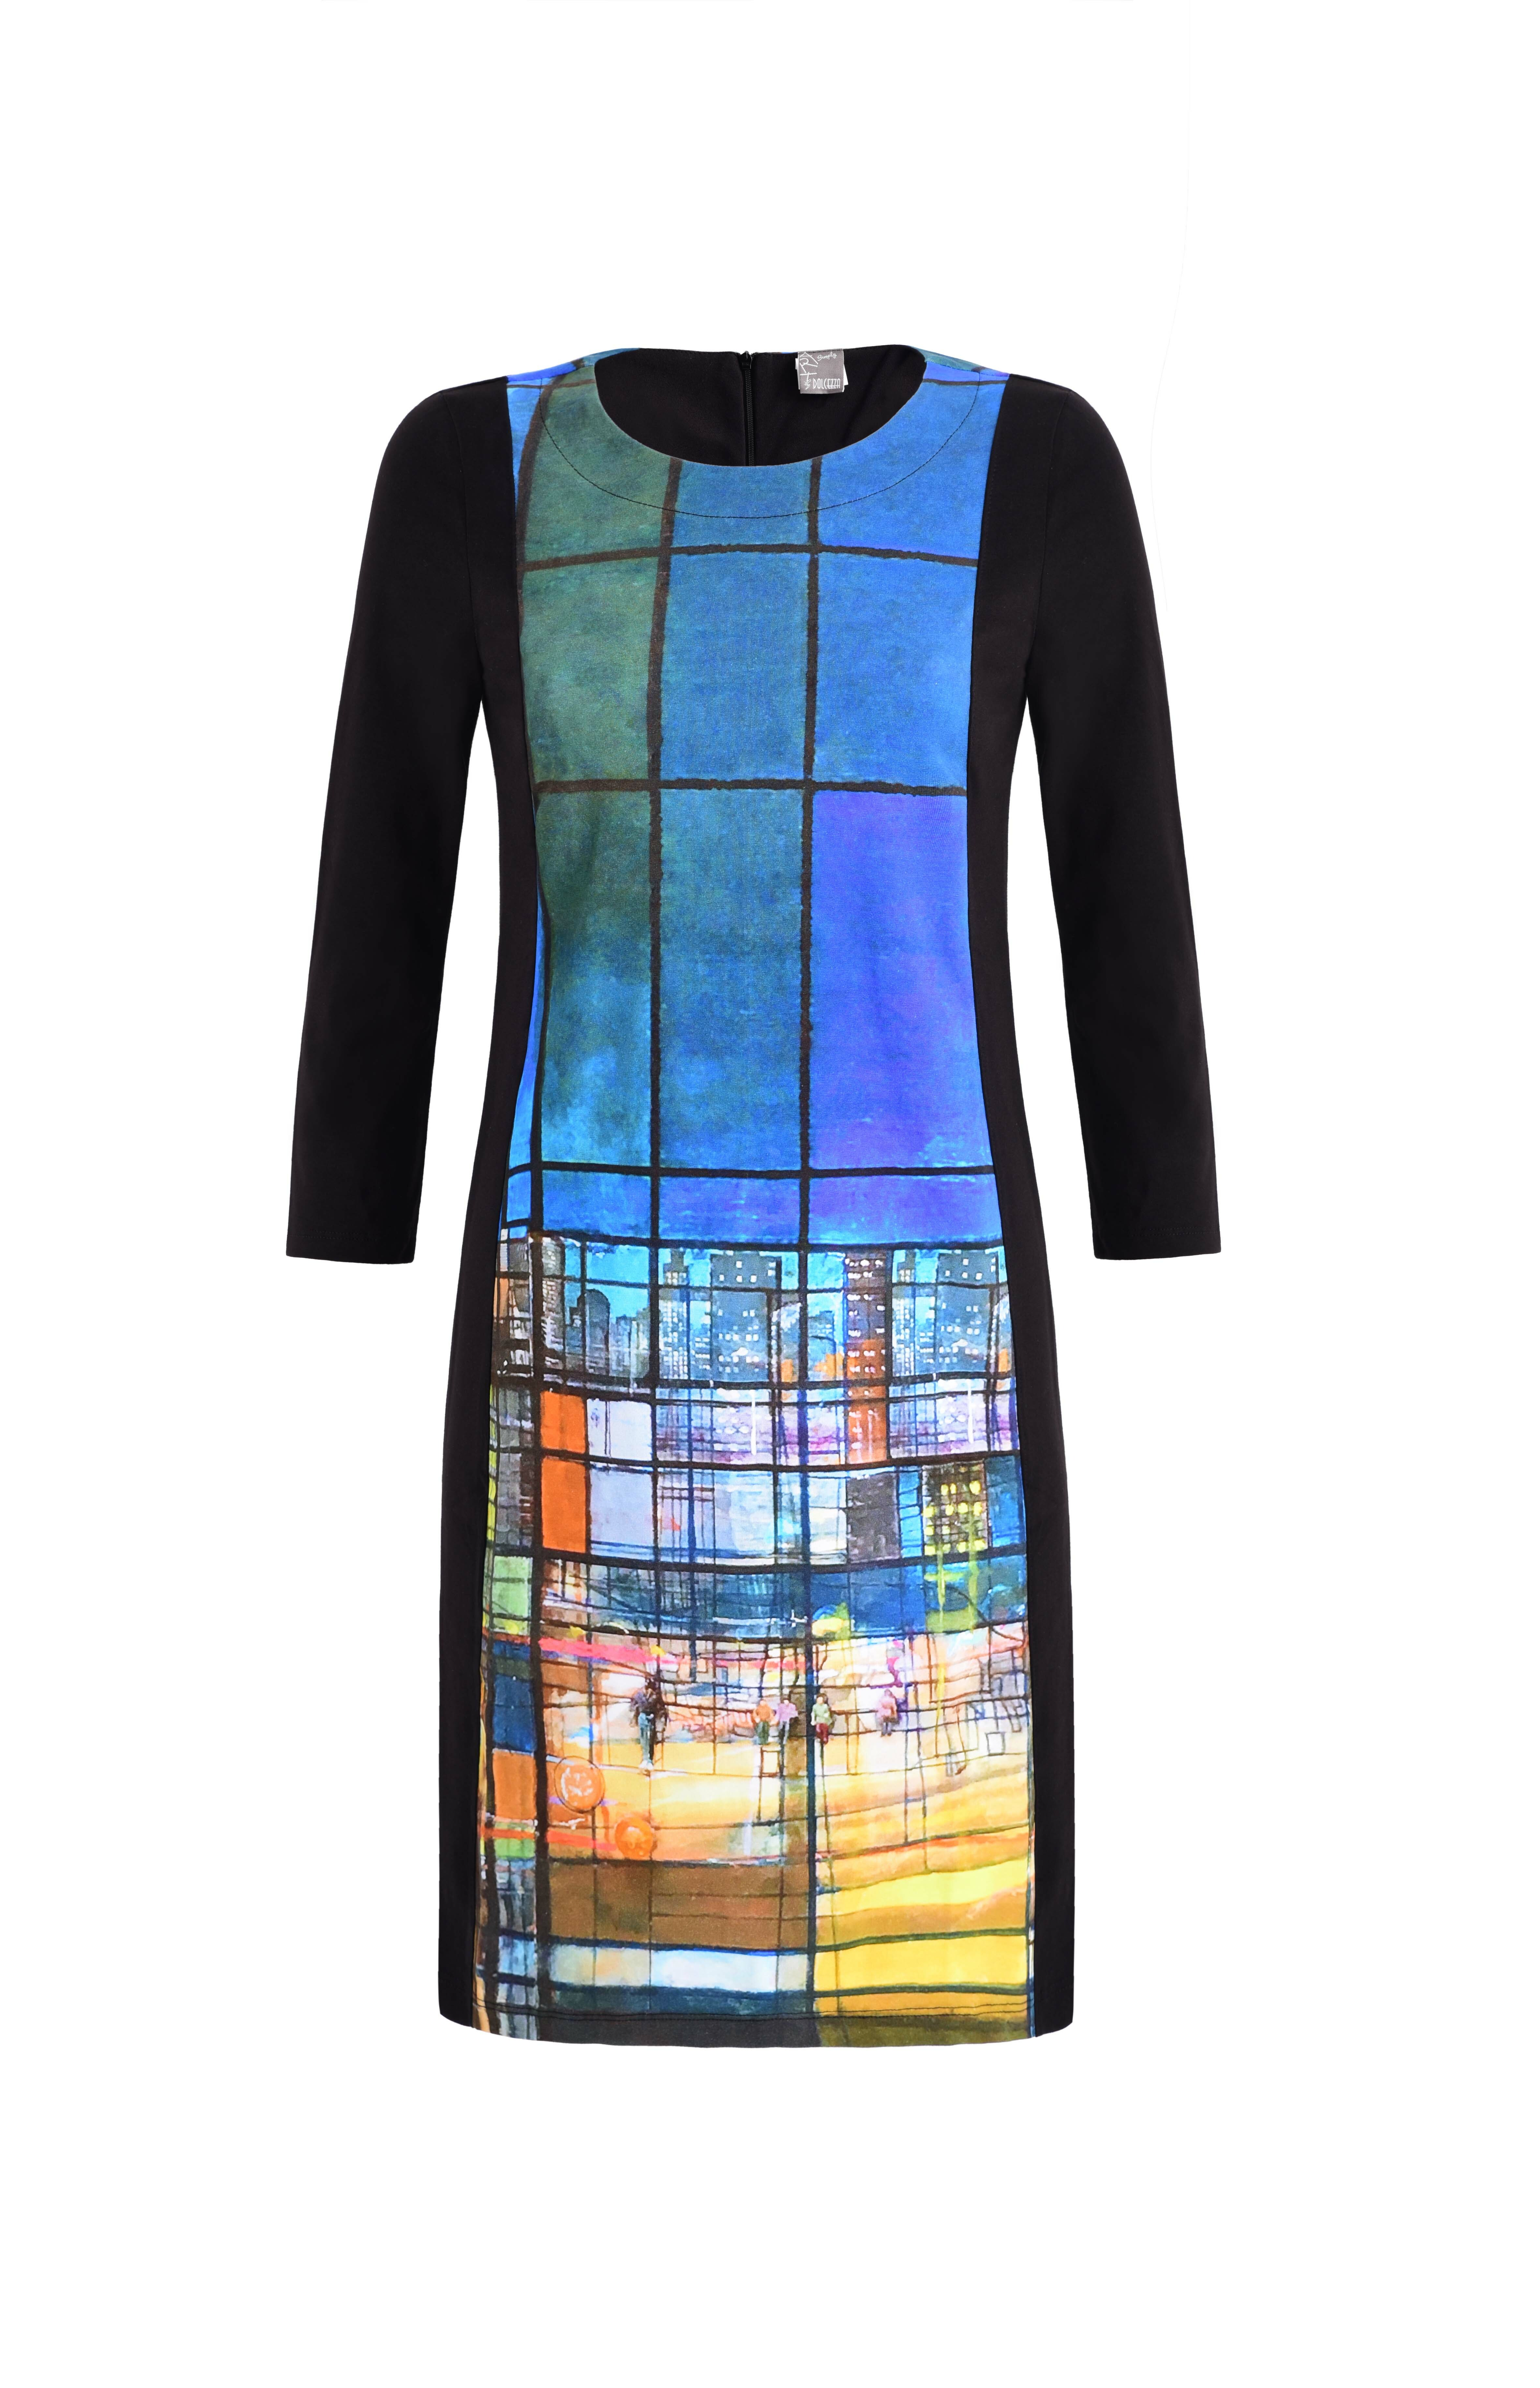 Simply Art Dolcezza: Colors Of Ville La Nuit Abstract Art Dress (1 Left!) Dolcezza_SimplyArt_59714